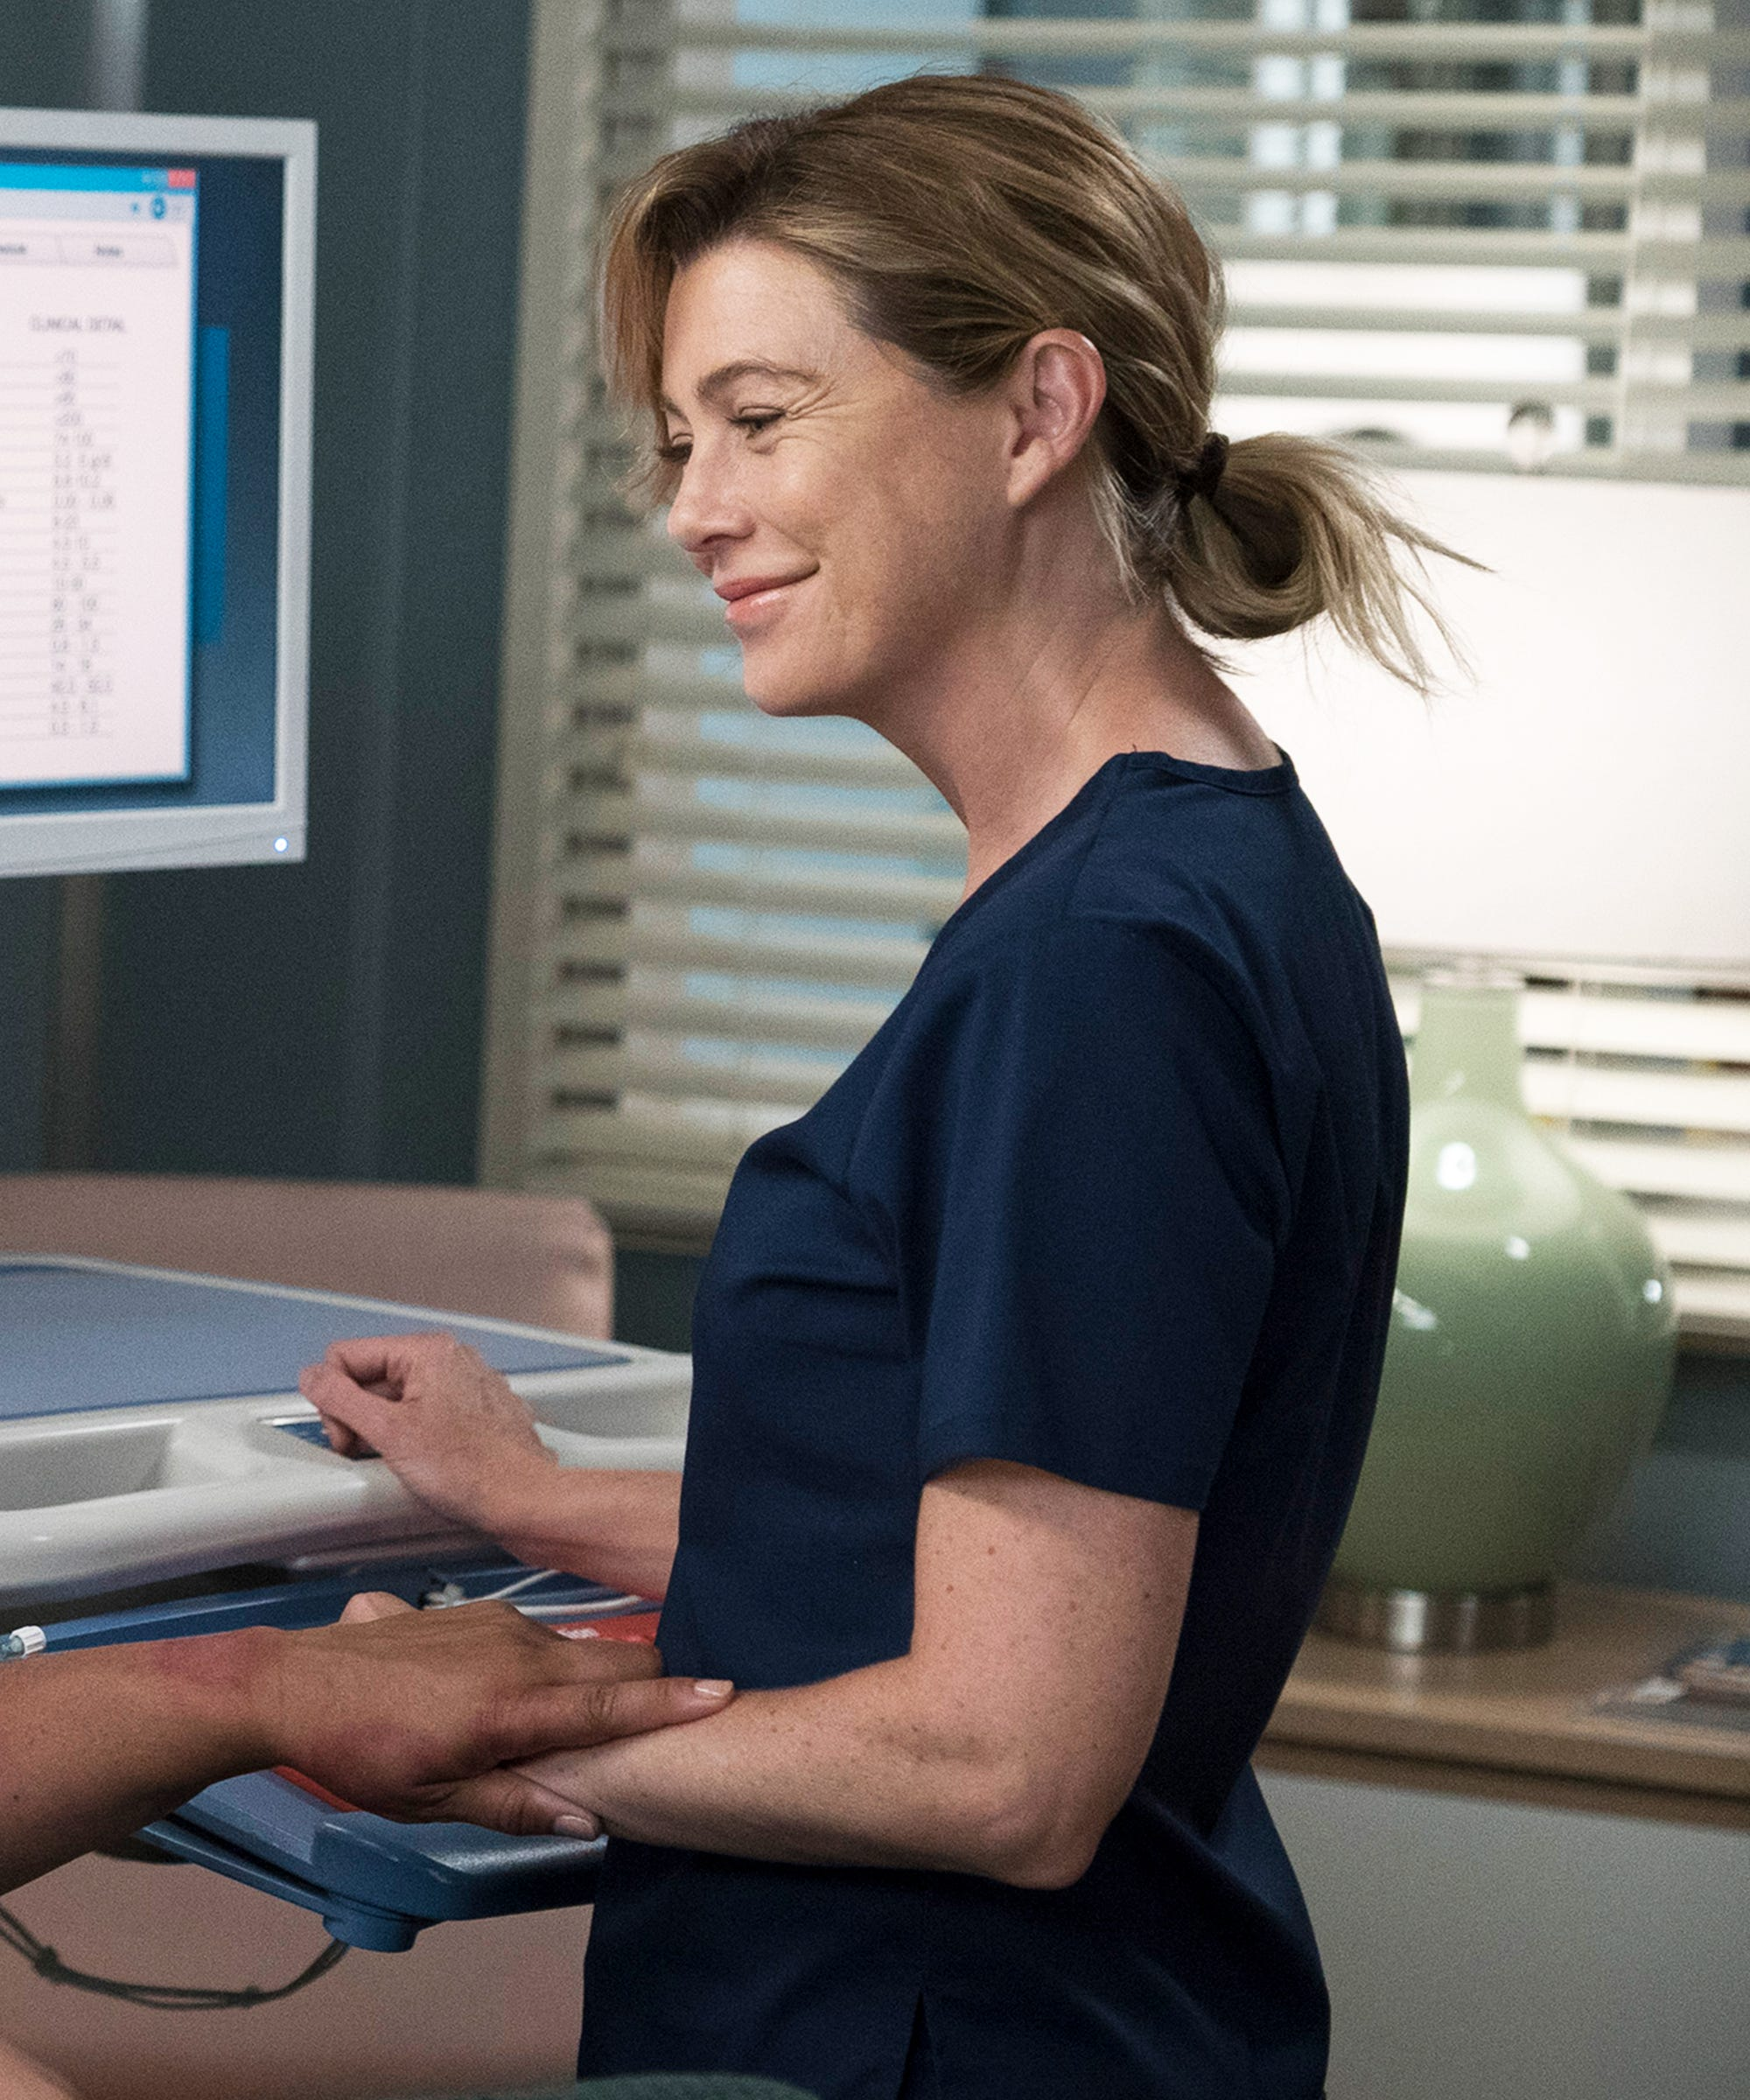 Best Medical Dramas - Guide To Hospital Shows 2019